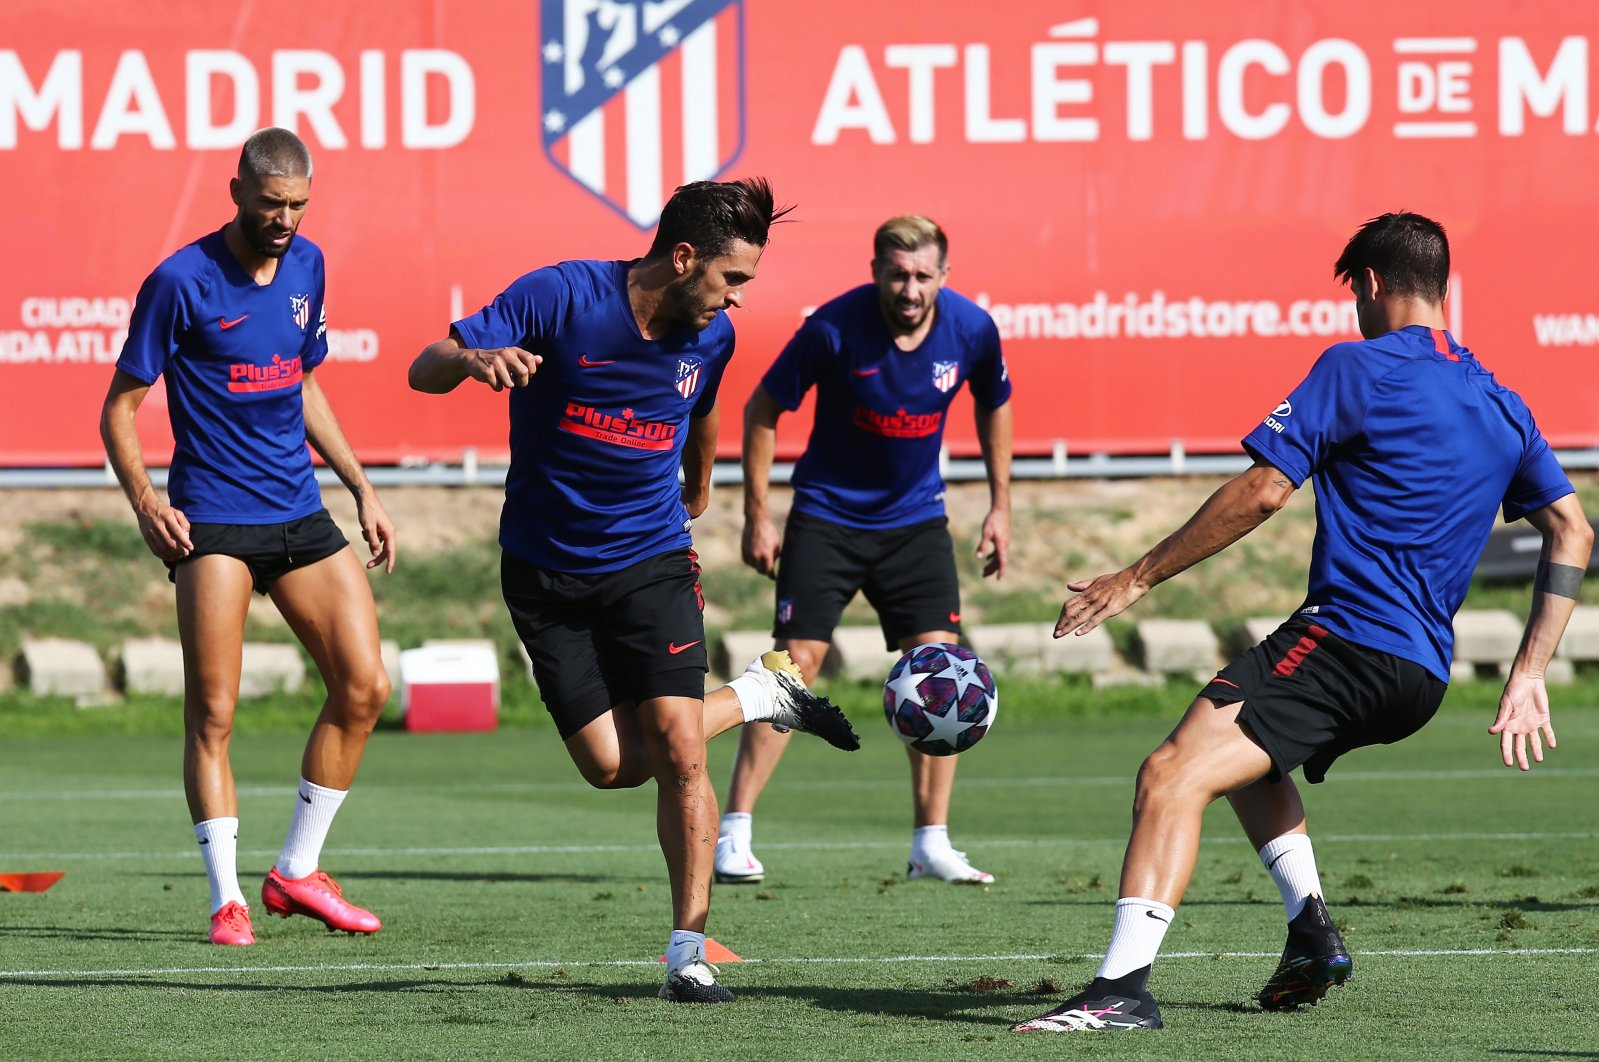 La Liga football club Atletico Madrid players kick a ball during a training session in Madrid, Spain, Aug. 7, 2020. (Atletico Madrid handout photo via EPA)